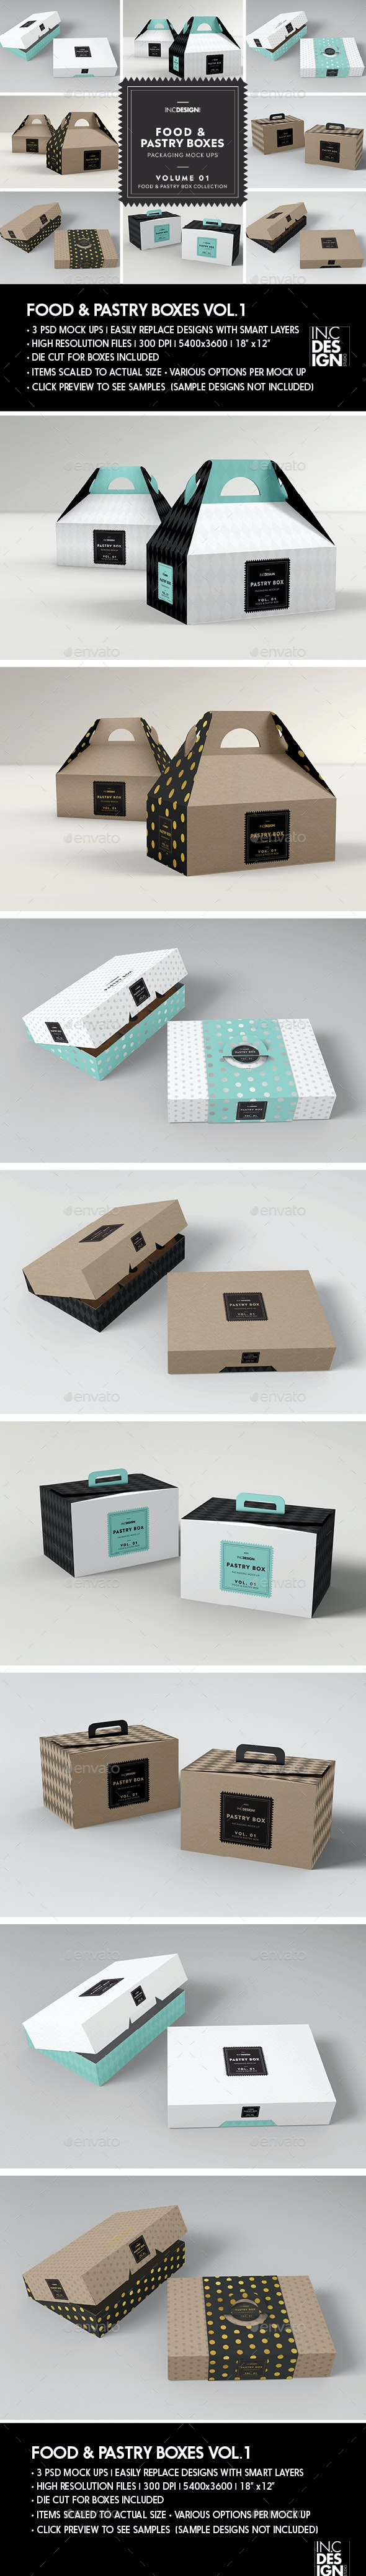 Food Pastry Boxes Vol.1: Cake Donut Pastry Packaging Mockups - Food and Drink Packaging